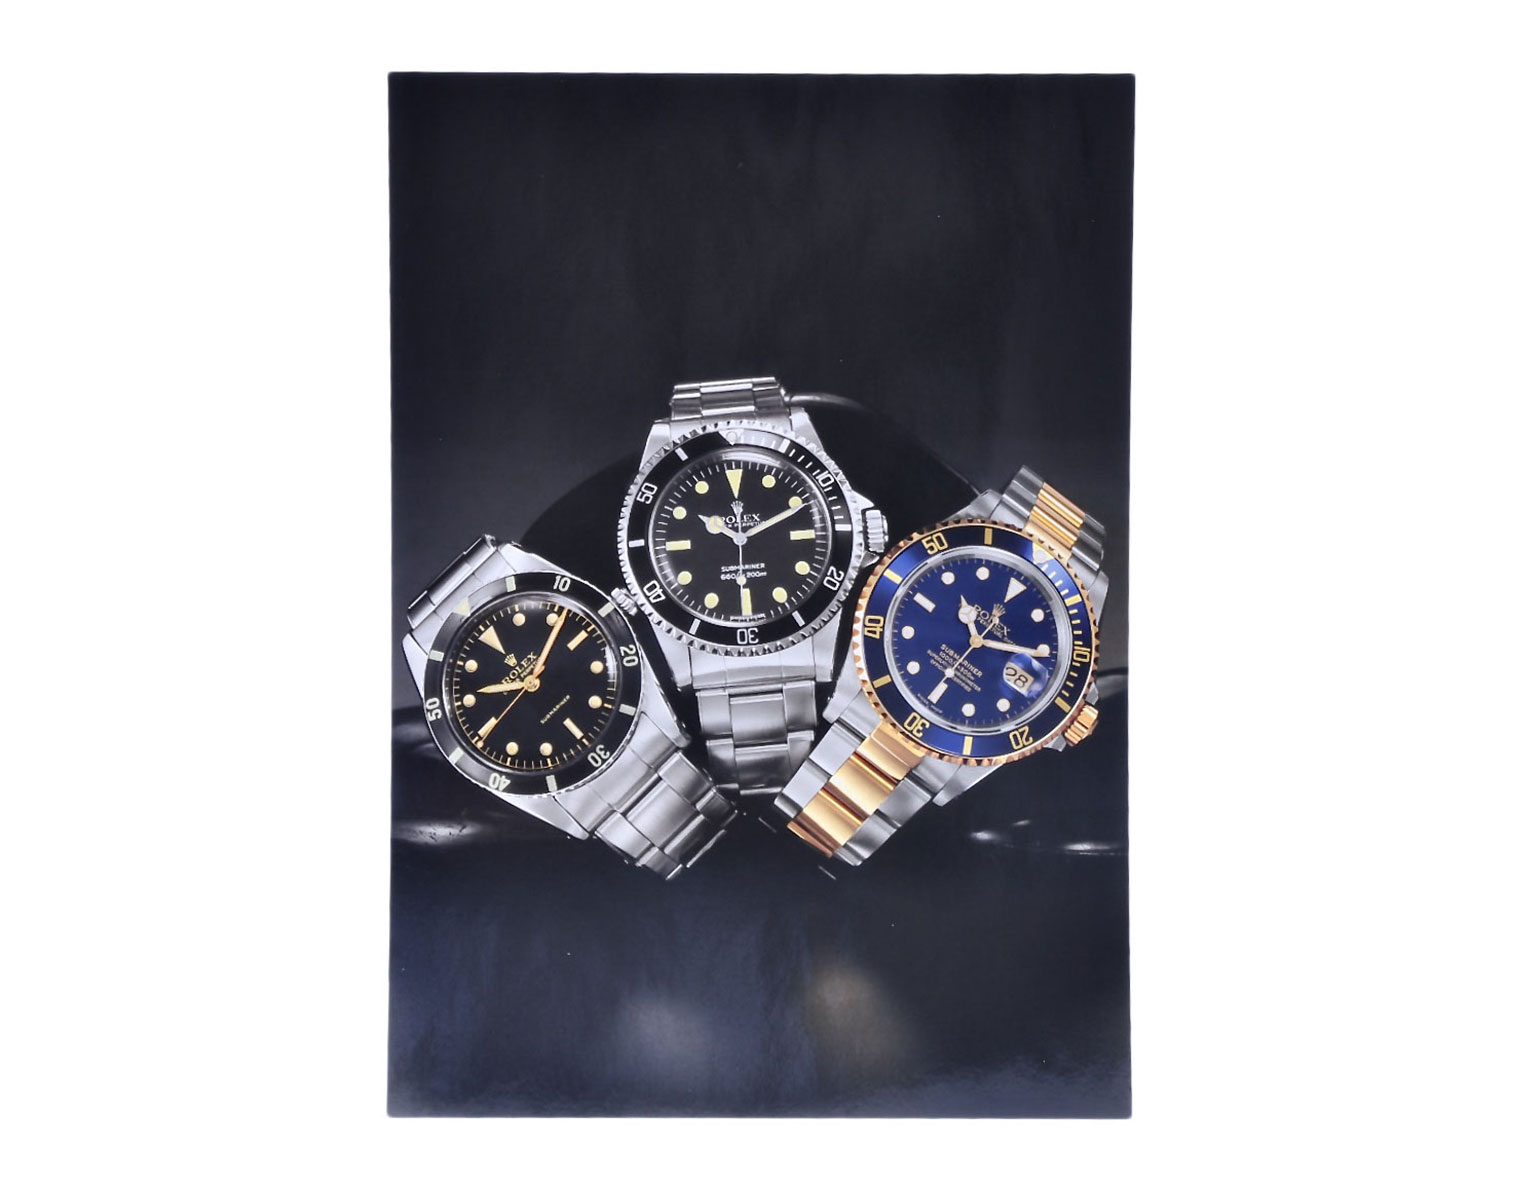 Rolex Submariner 16610lv 50th Anniversary Press Pack